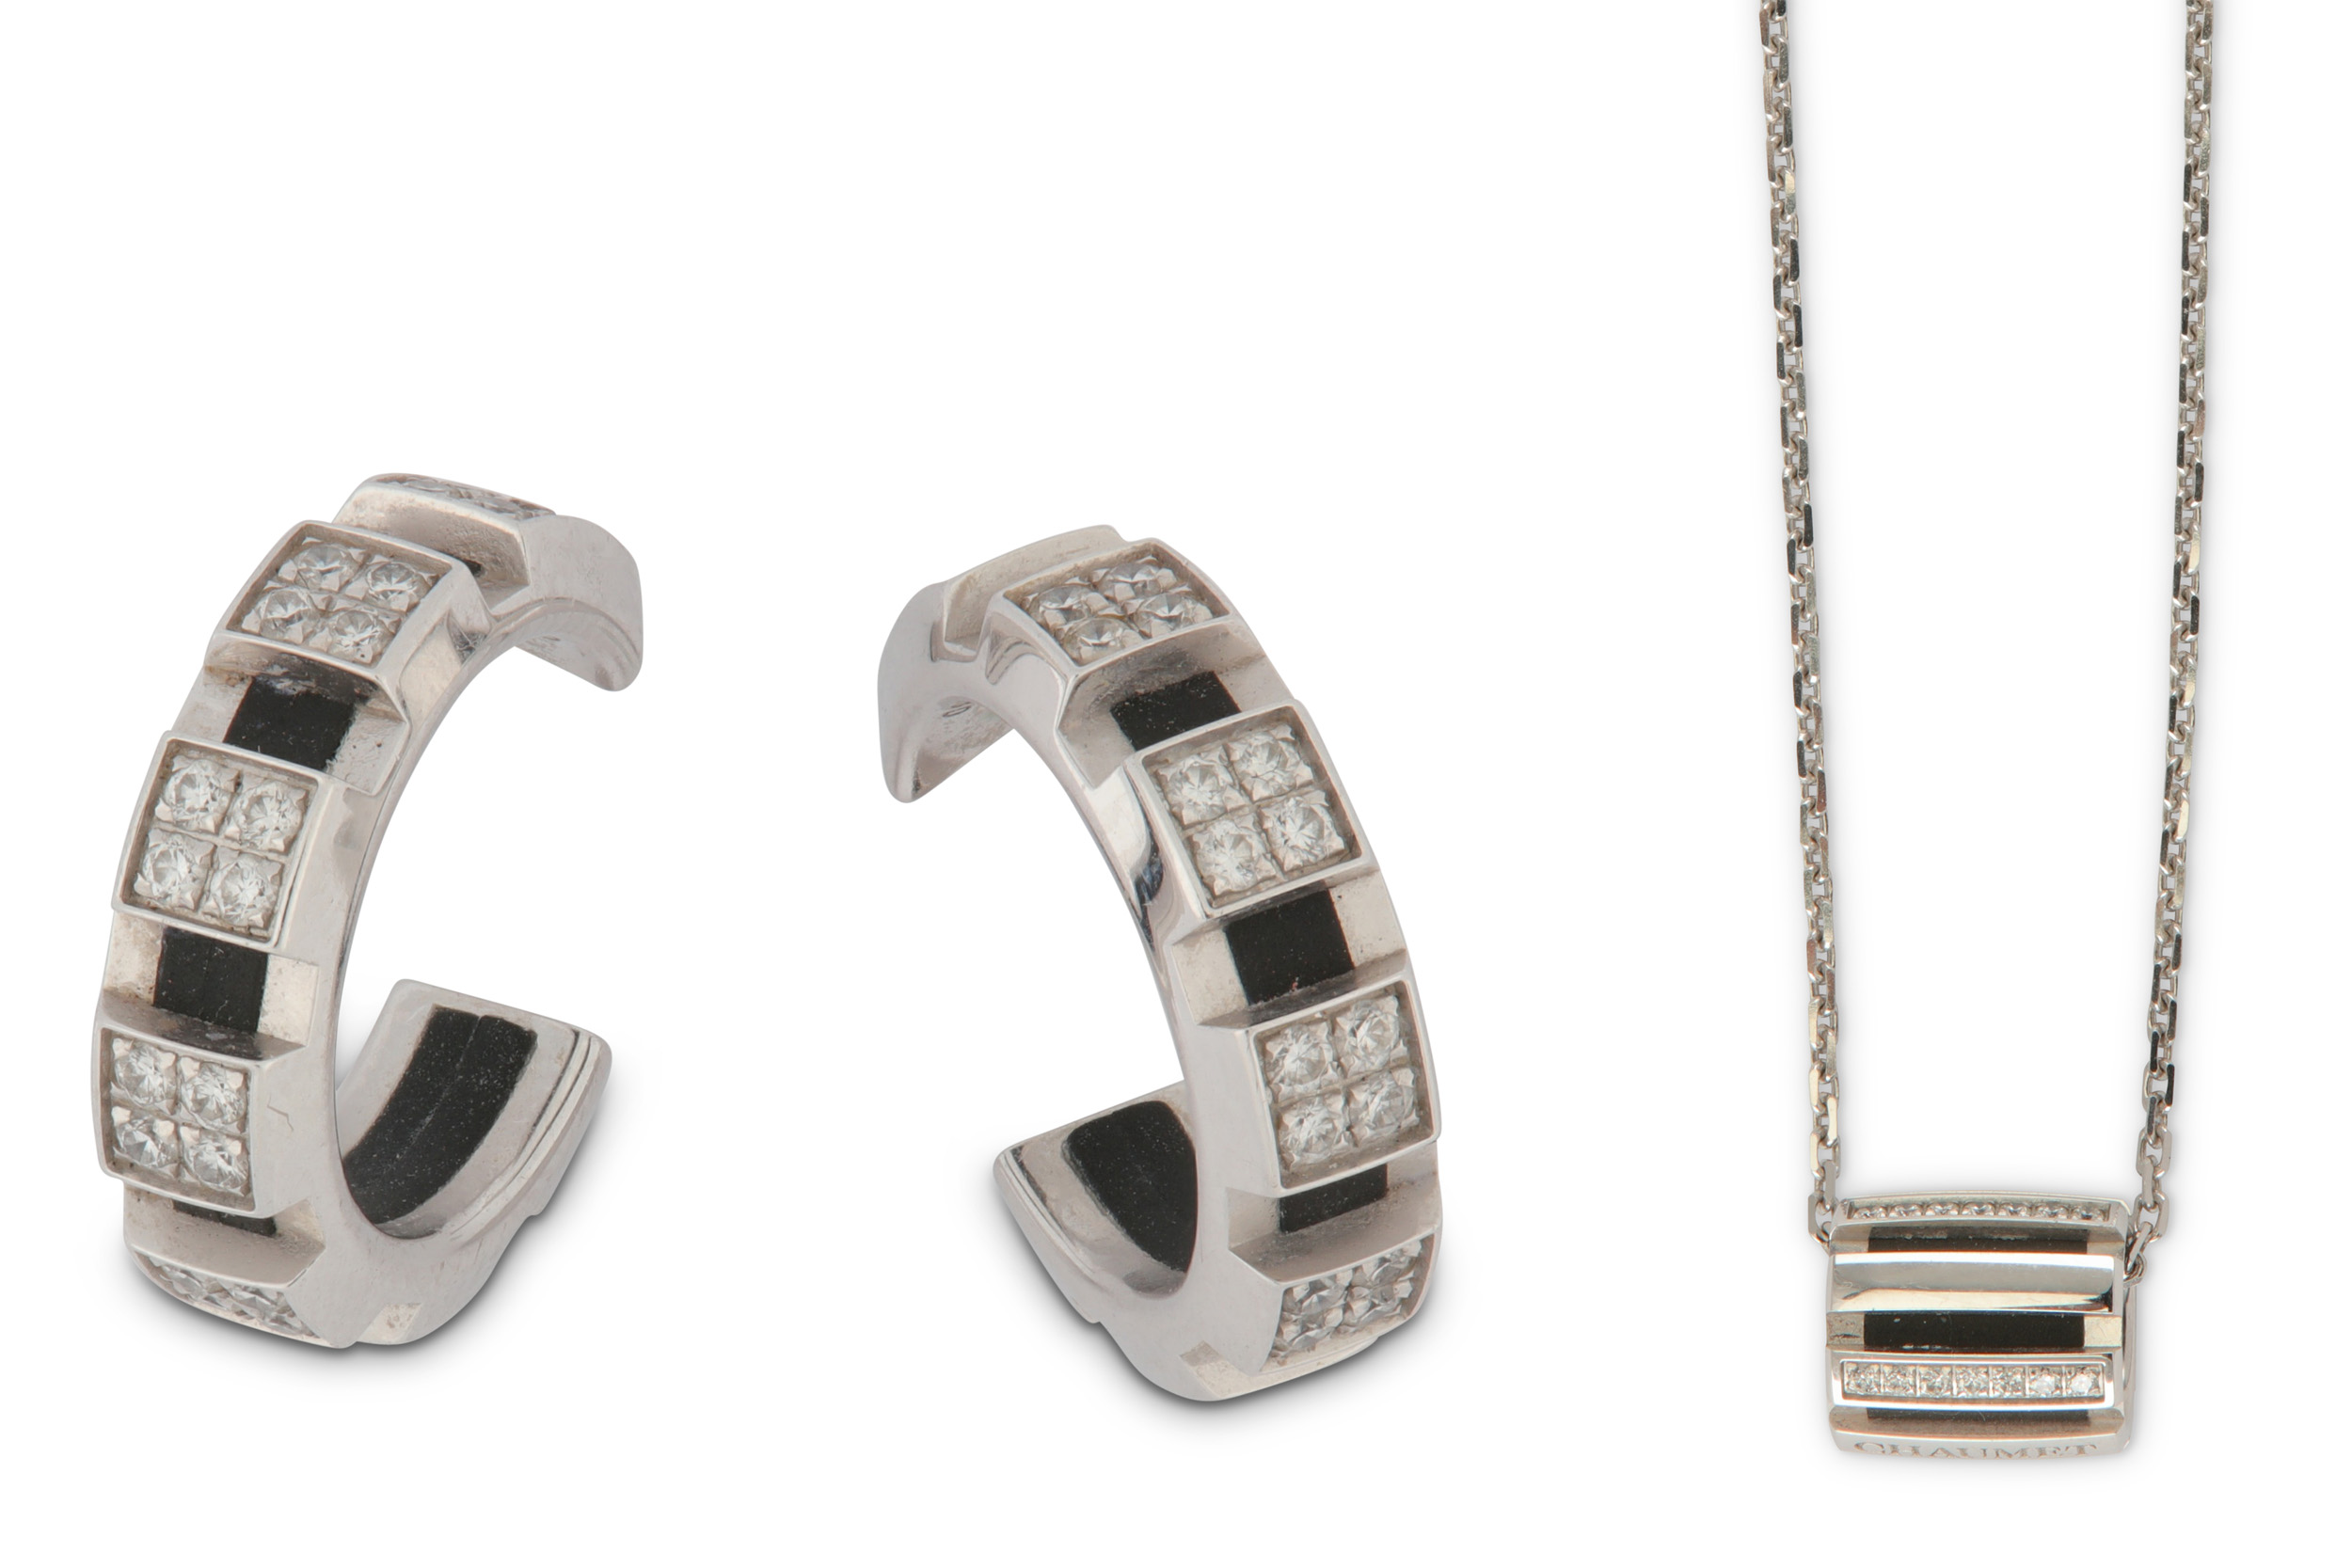 Lot 14 - A diamond-set'Class One'earring and pendant necklace suite, by Chaumet